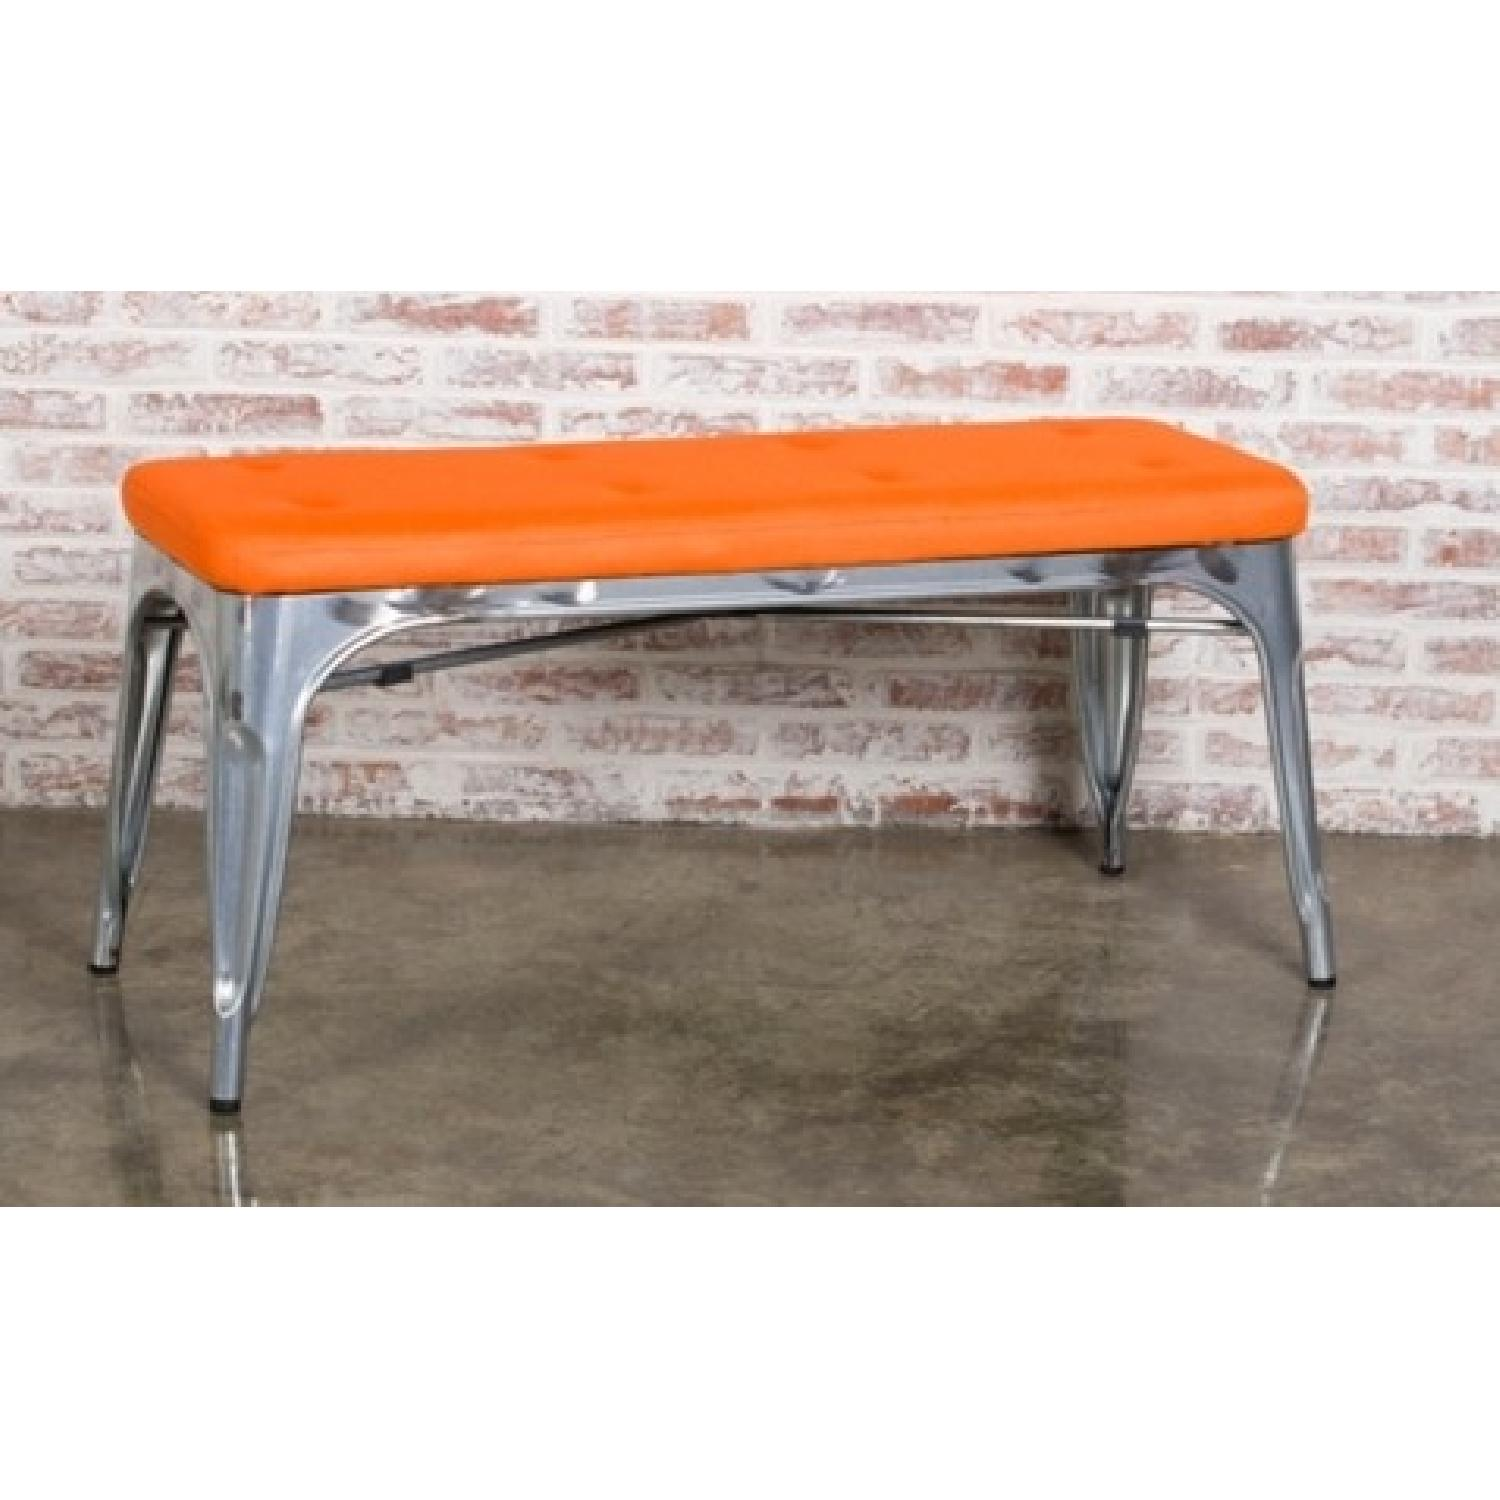 Bench in Galvanized Steel w/ Orange Mesh Cushion - image-1